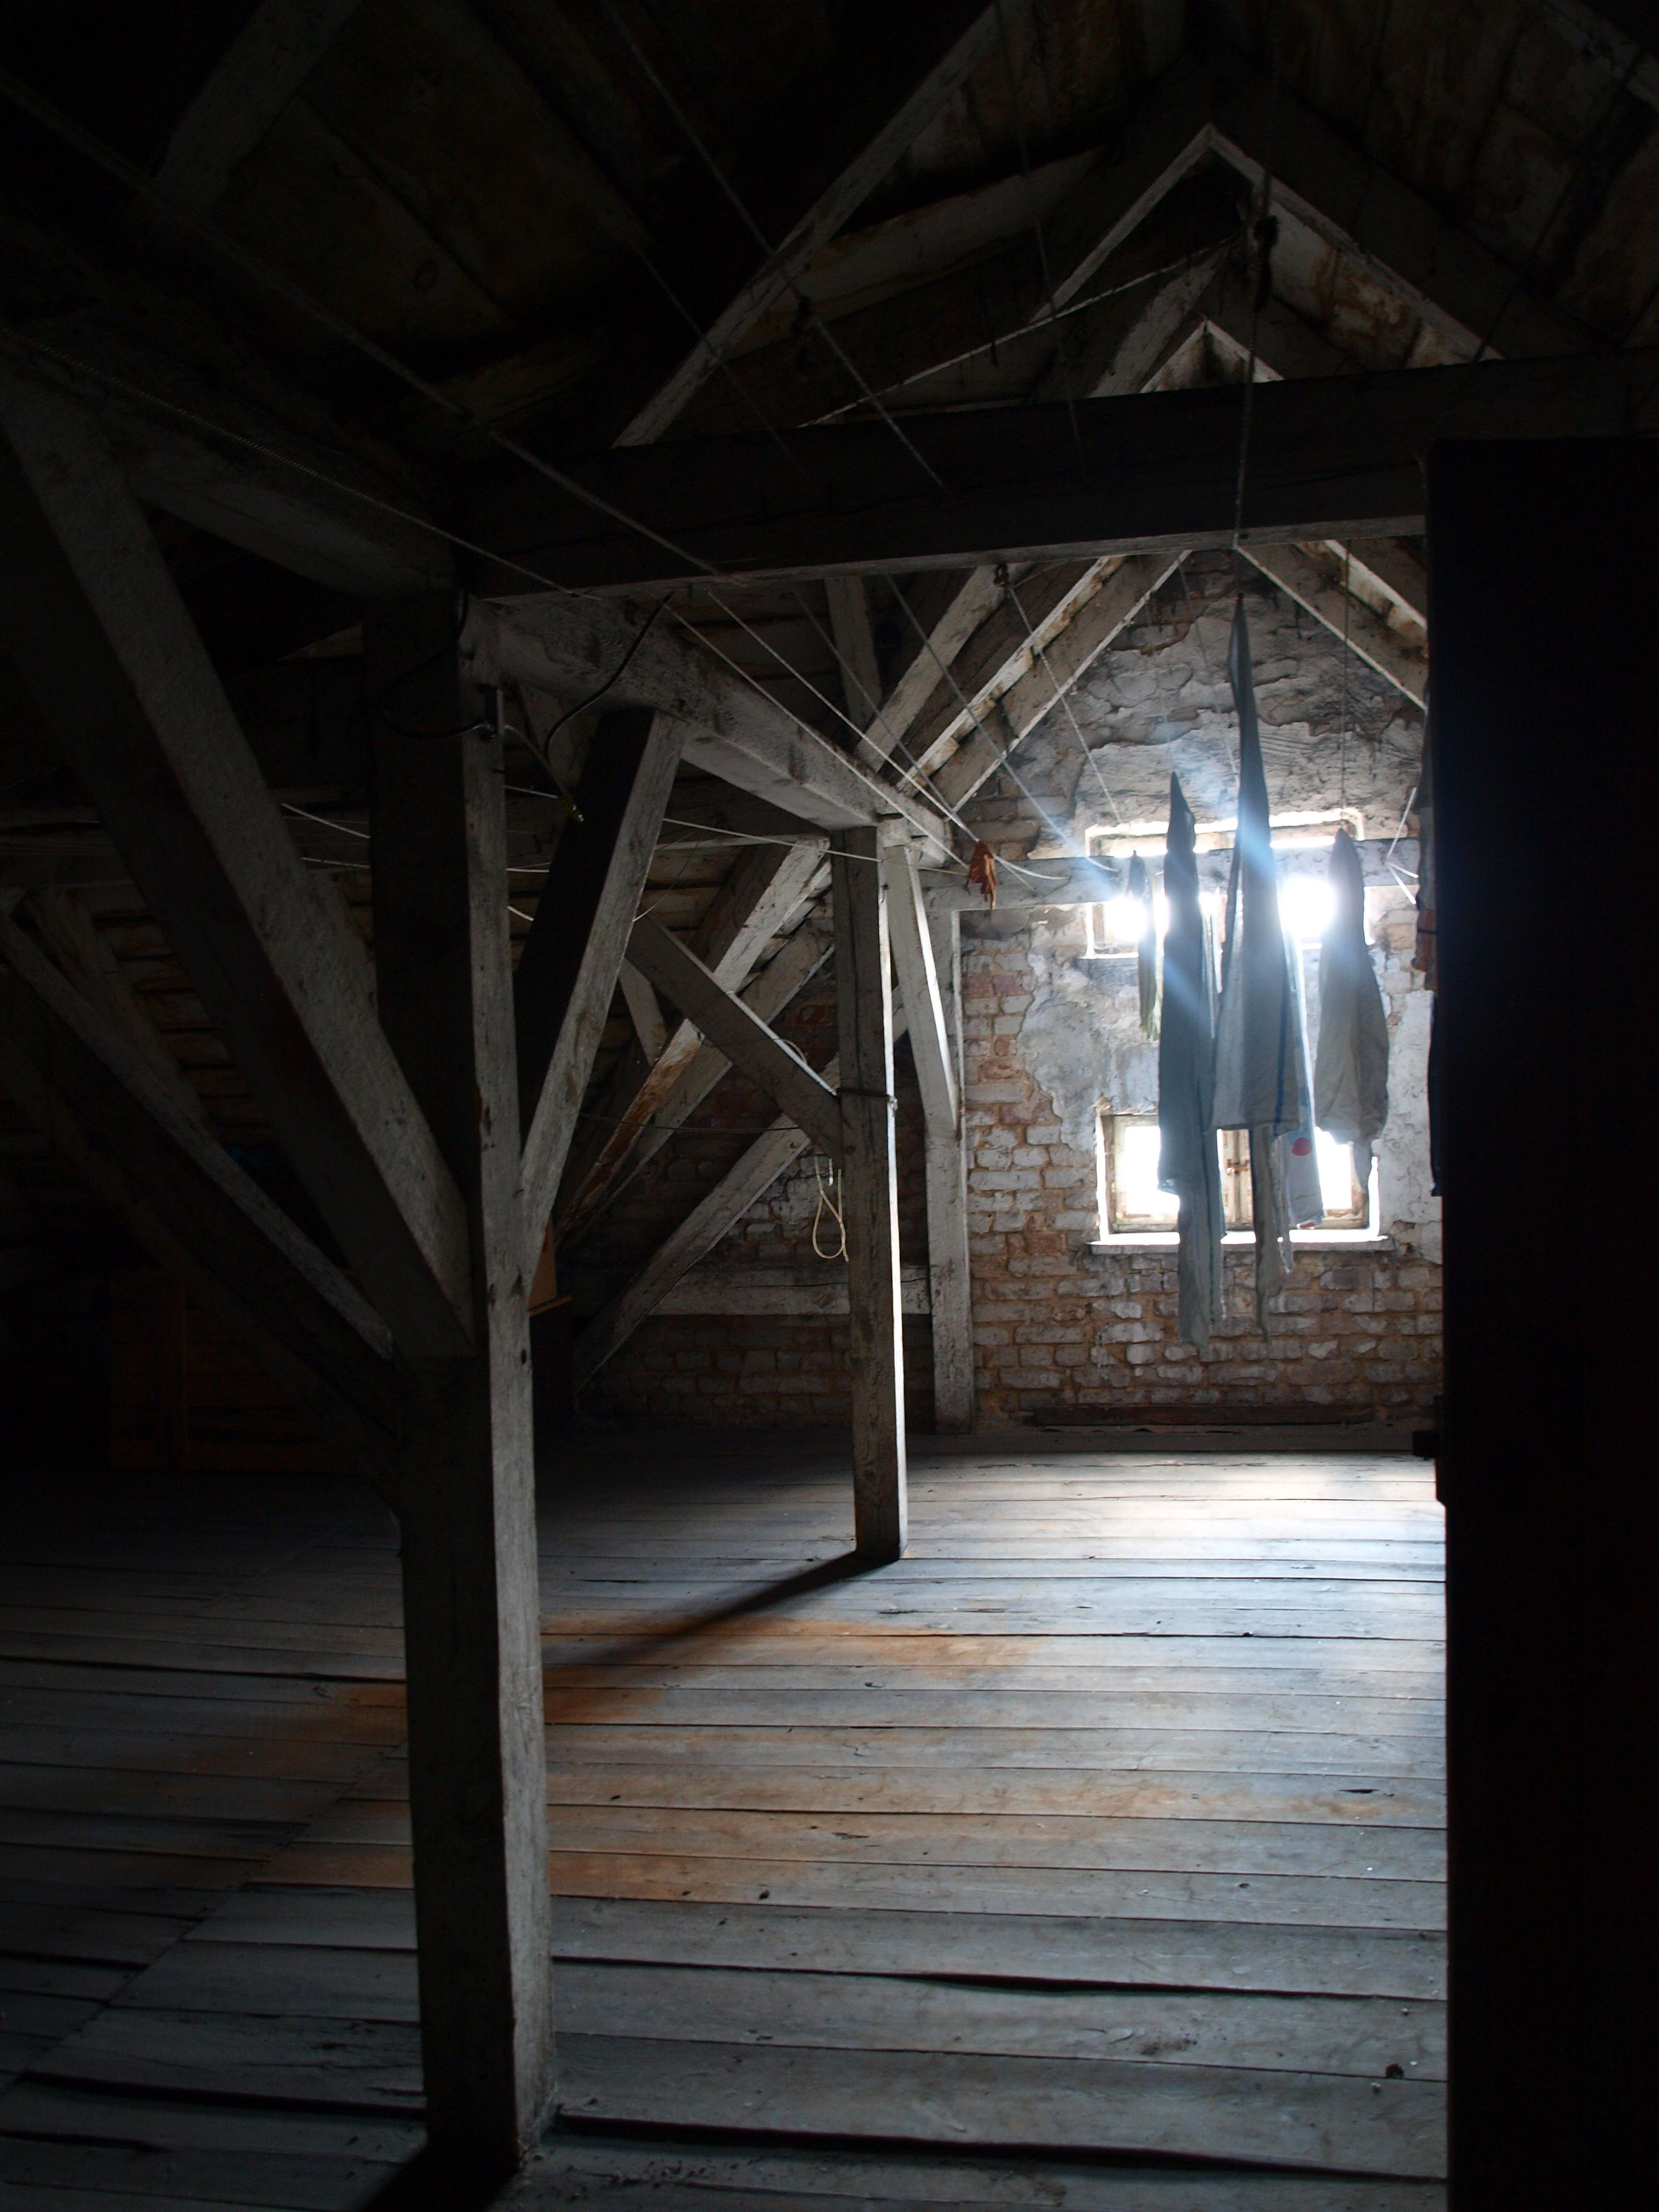 Creepy Attic Google Search Old Attics And Basements - Dark creepy basement